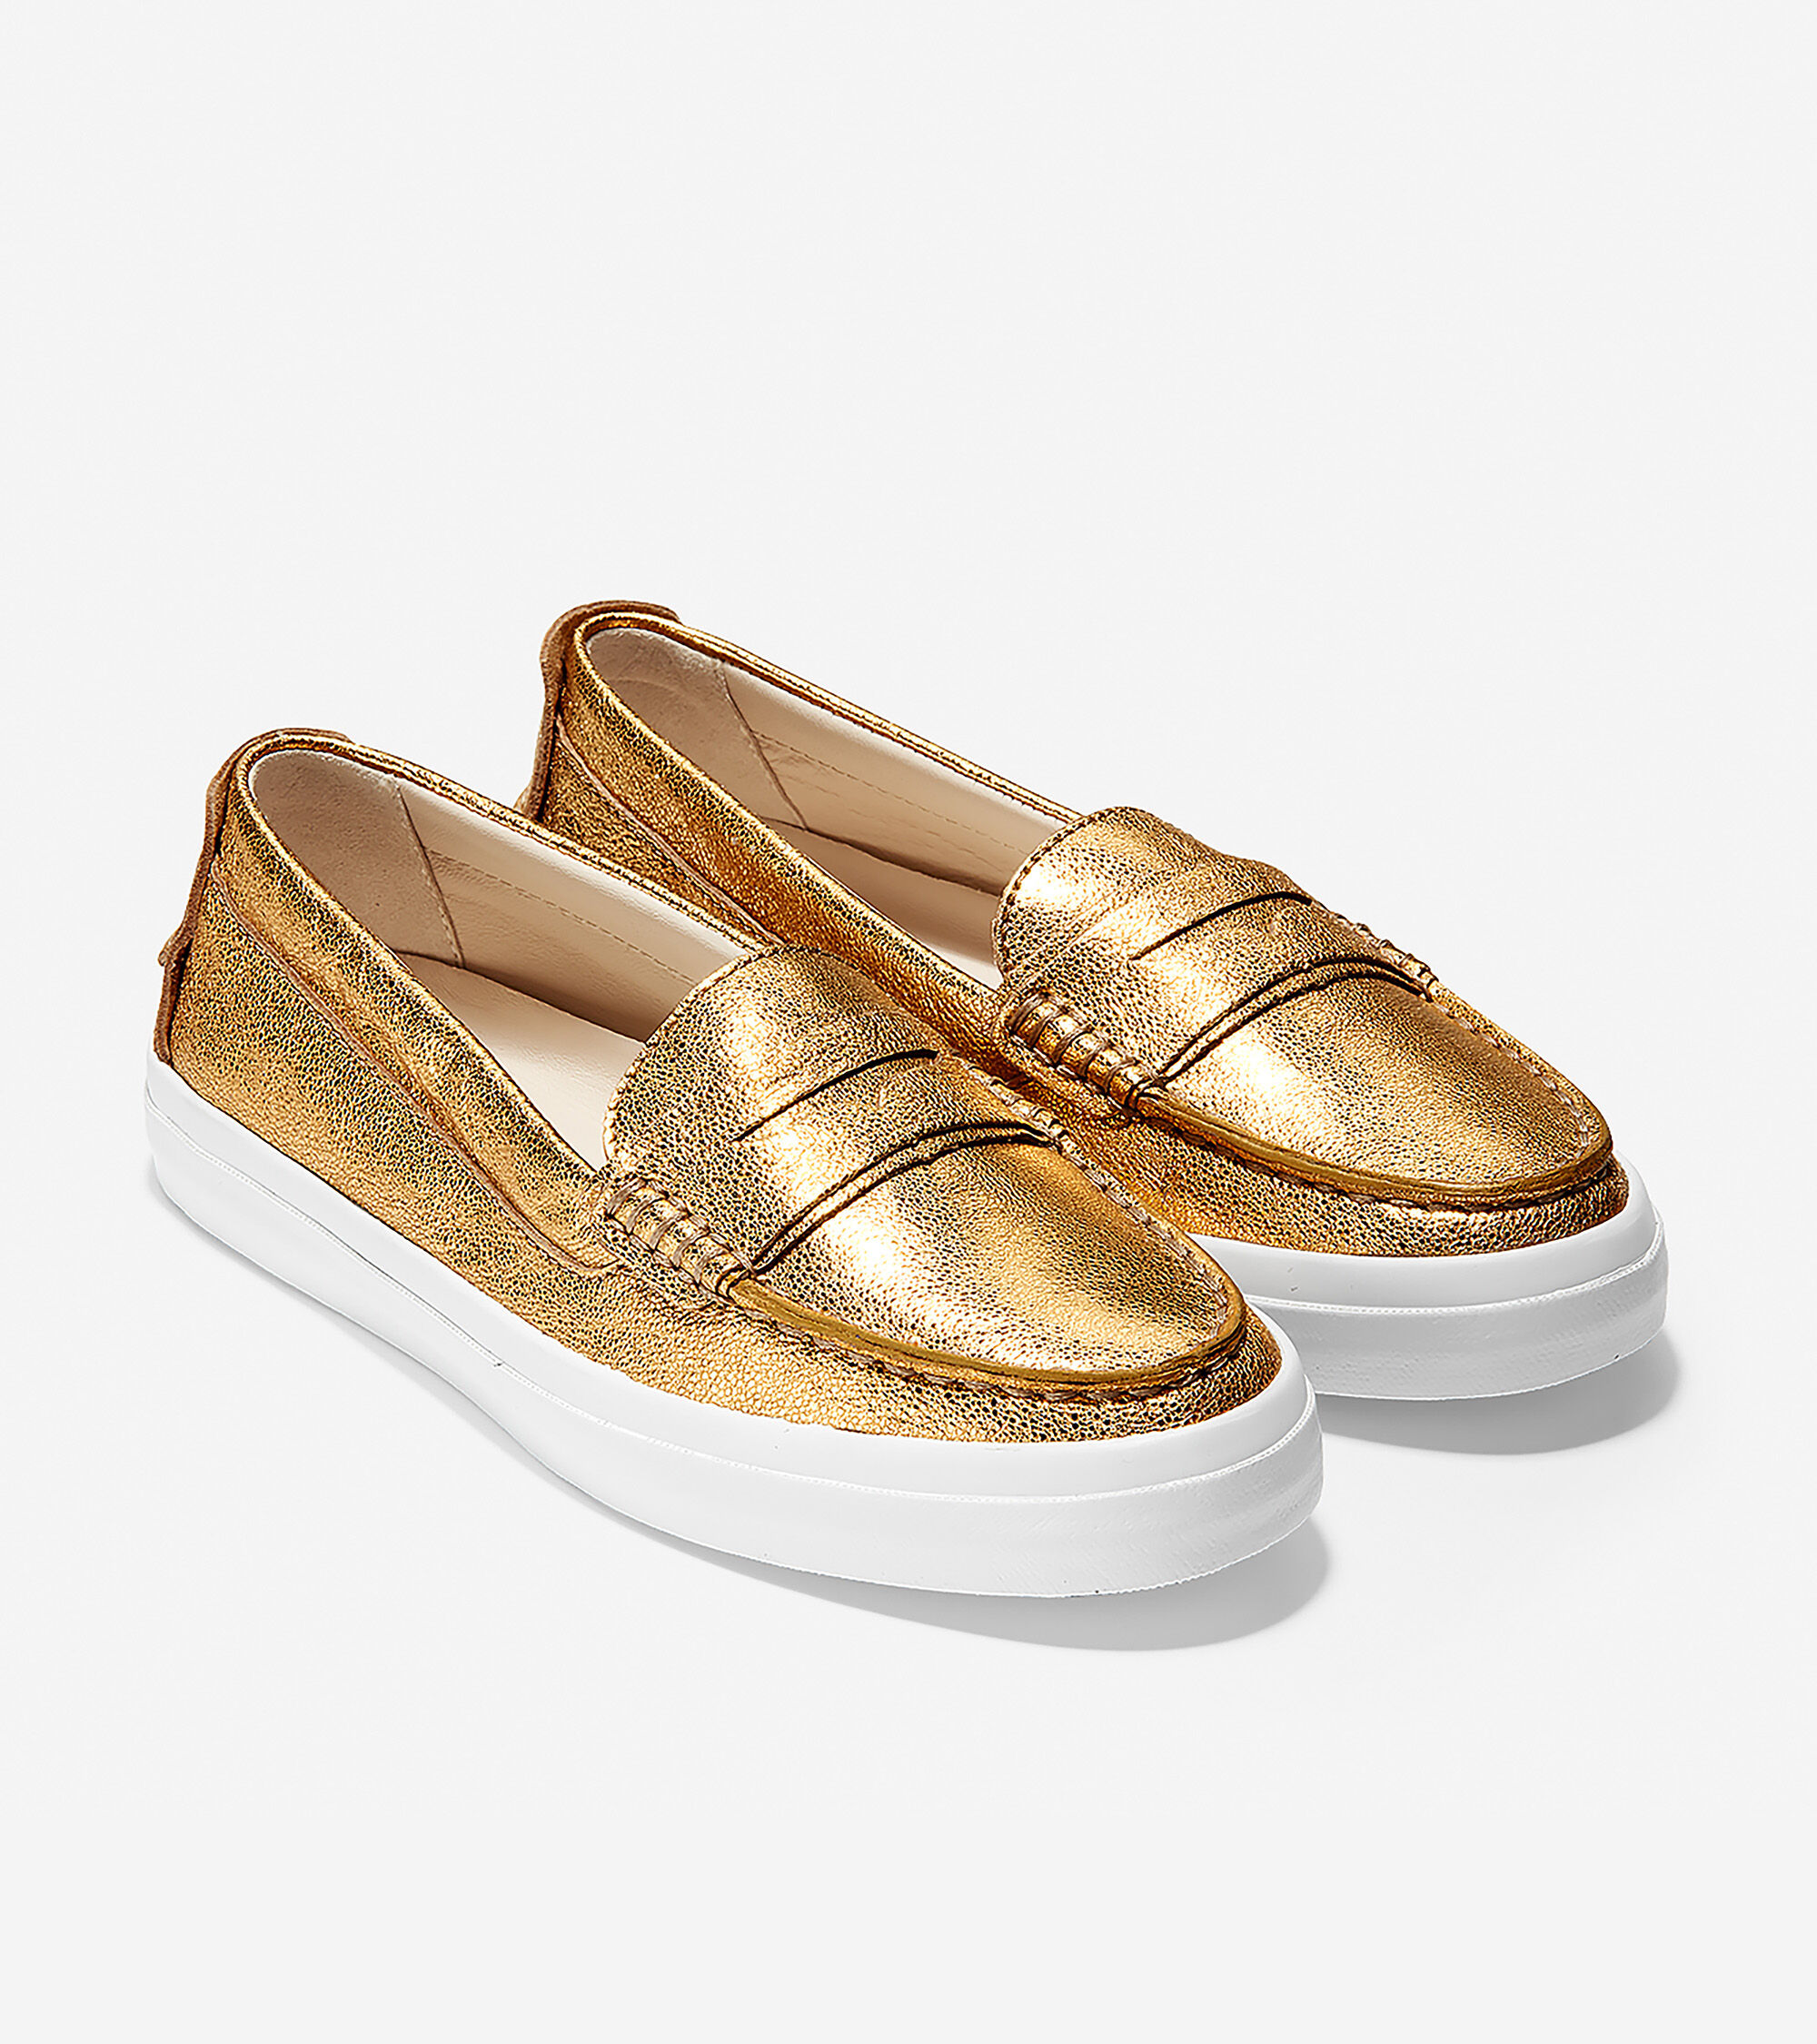 9522f12b3b96 Women s Pinch Weekender LX Loafers in Gold Soko Wash